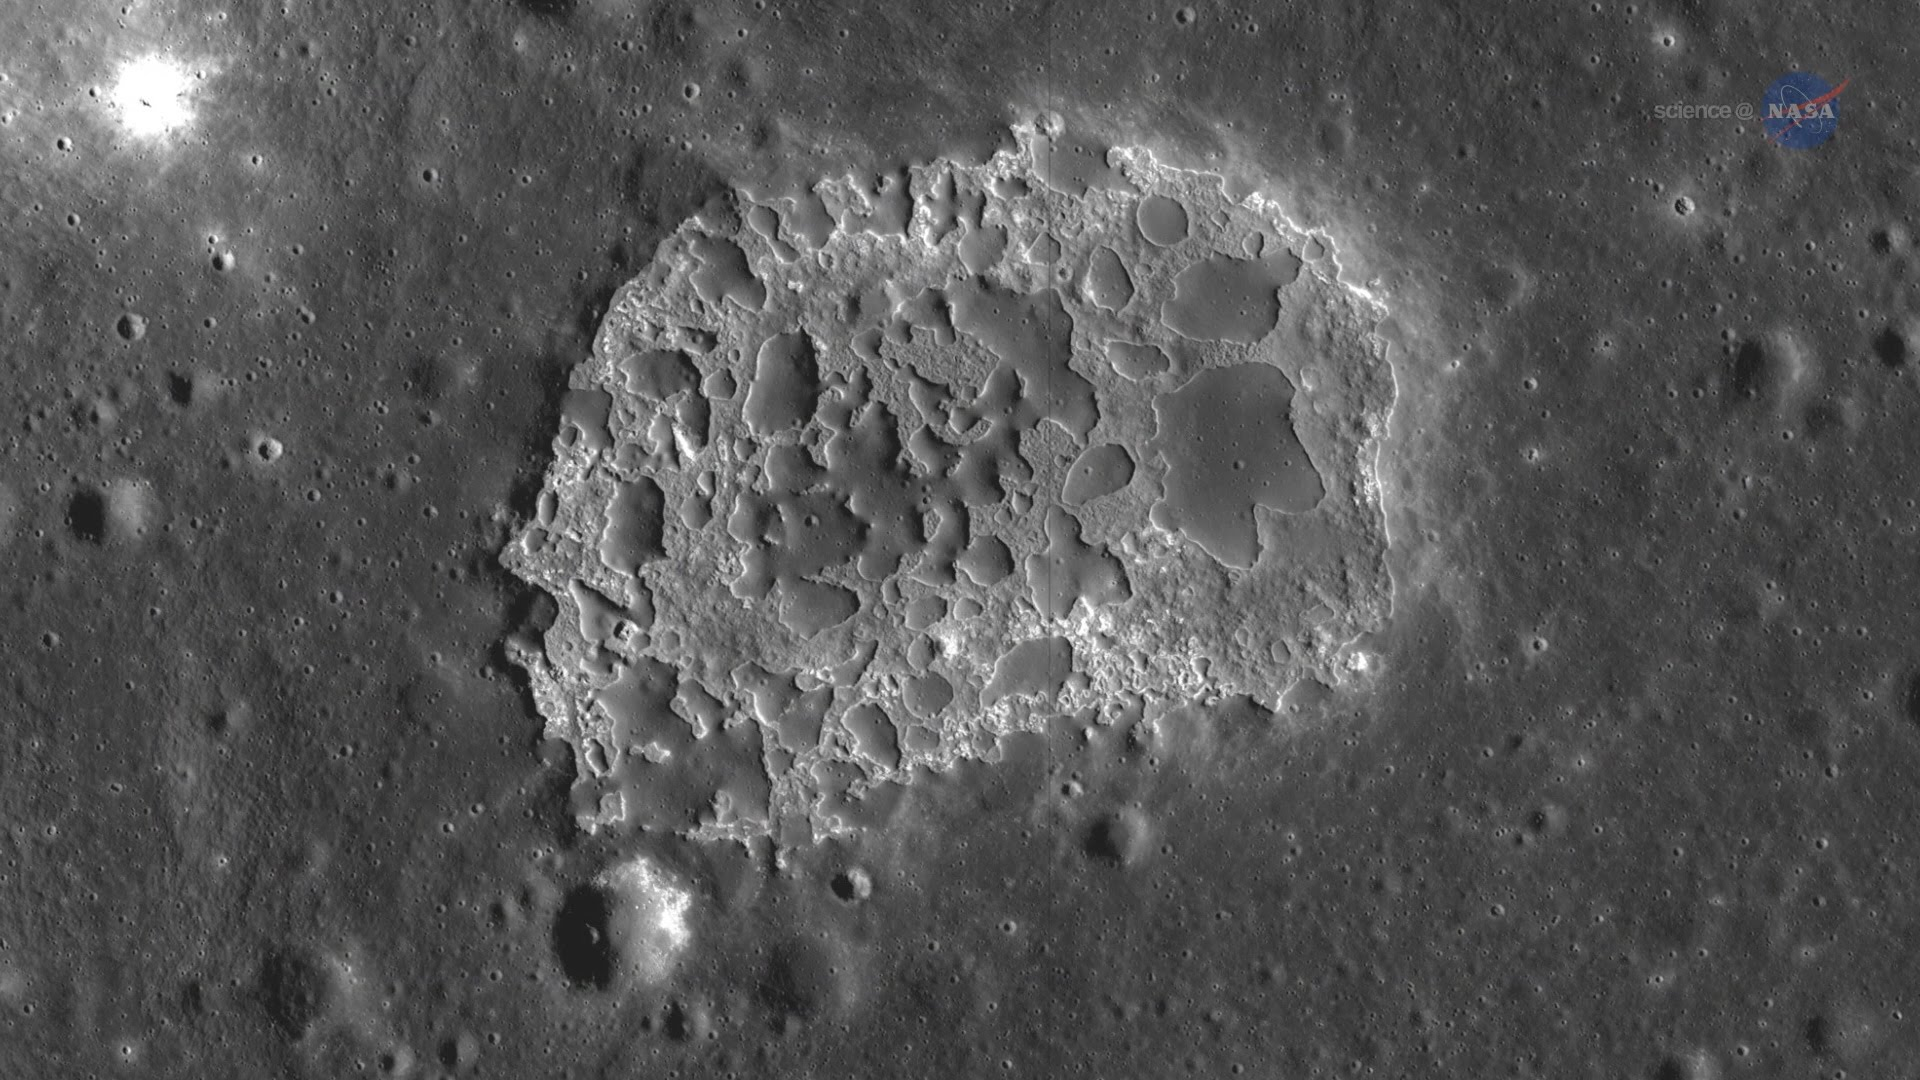 The Moon - Lunar Volcanism